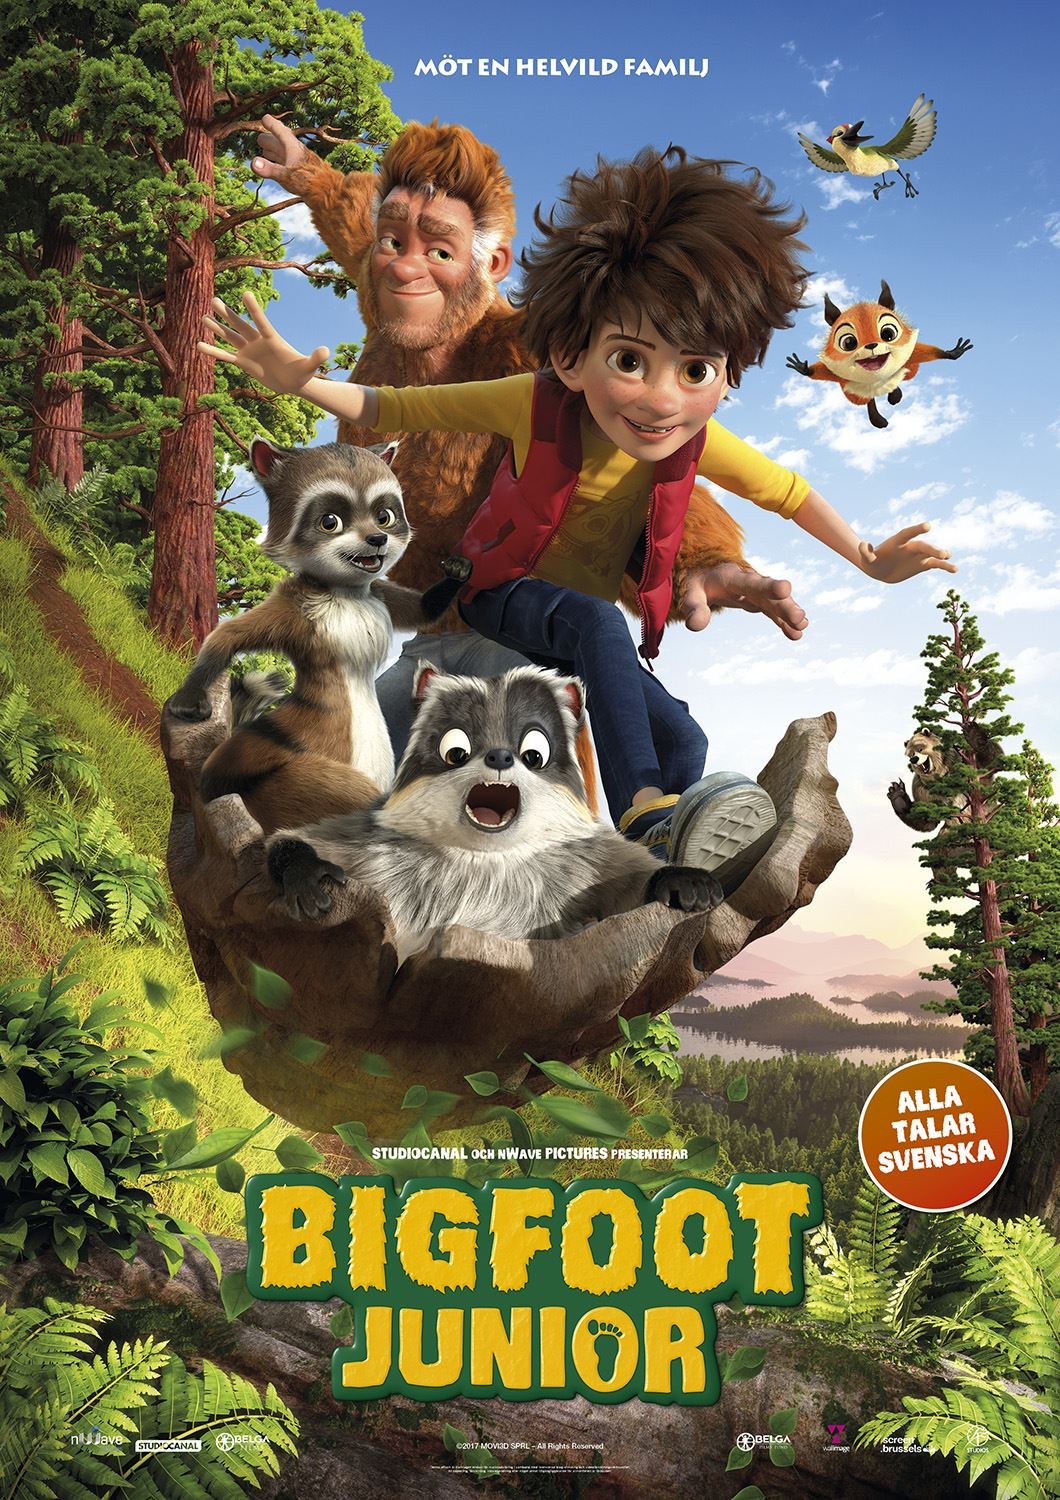 Filmettan presenterar: Bigfoot Junior